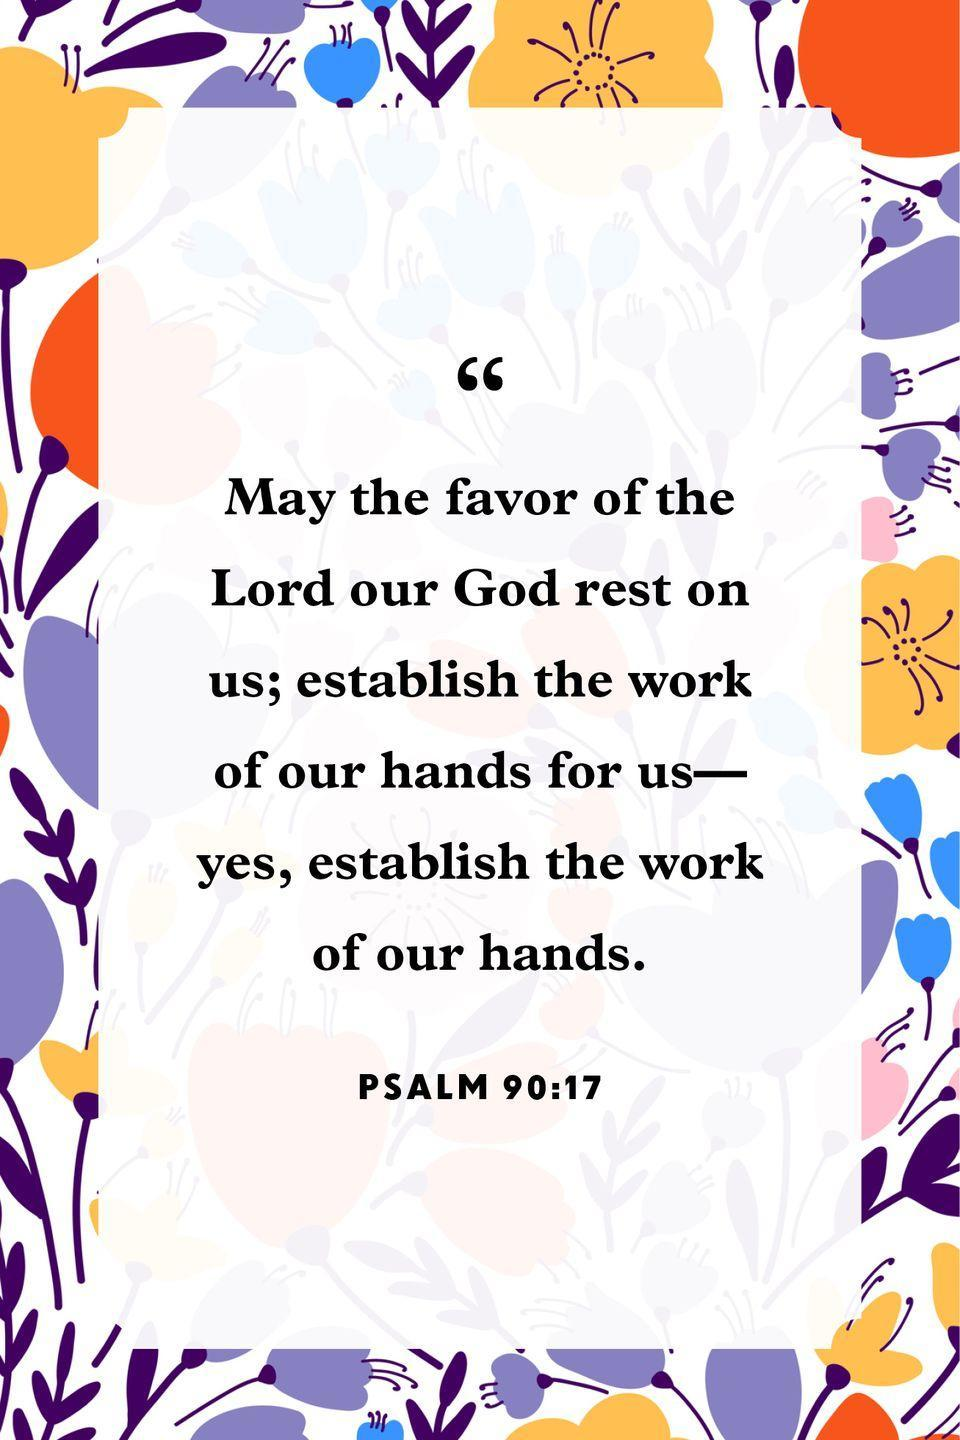 "<p>""May the favor of the Lord our God rest on us;<br>establish the work of our hands for us—<br>yes, establish the work of our hands.""</p>"